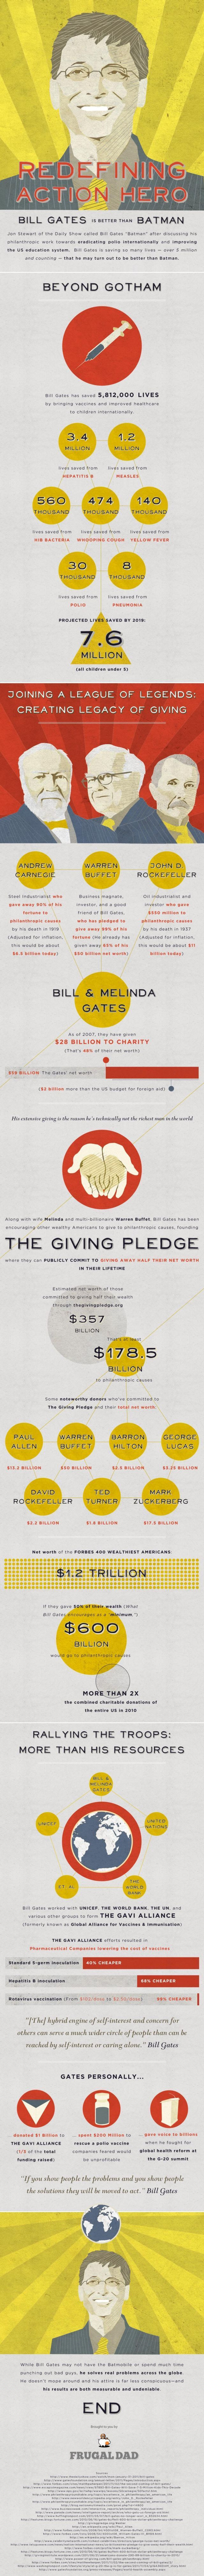 Bill and Melinda Gates - Super Heroes for the voiceless...